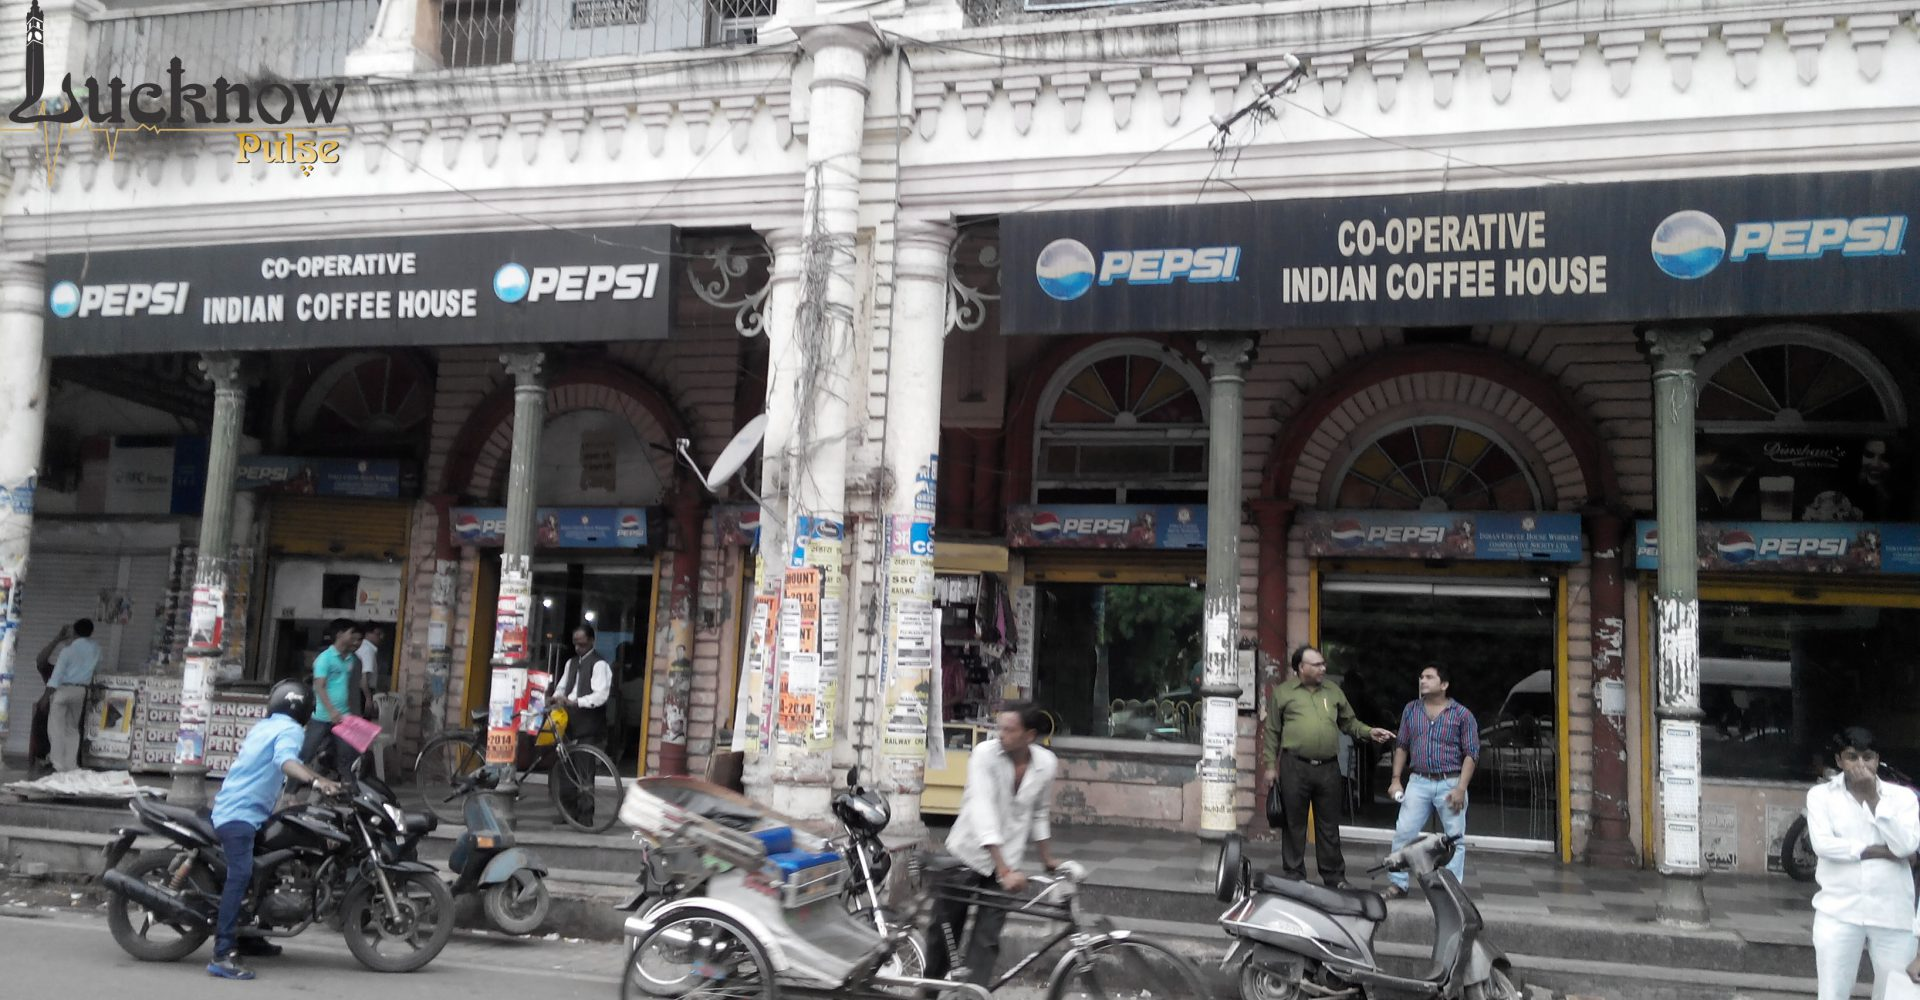 Lucknow Pulse picture of The Coffee House at Hazratganj Lucknow